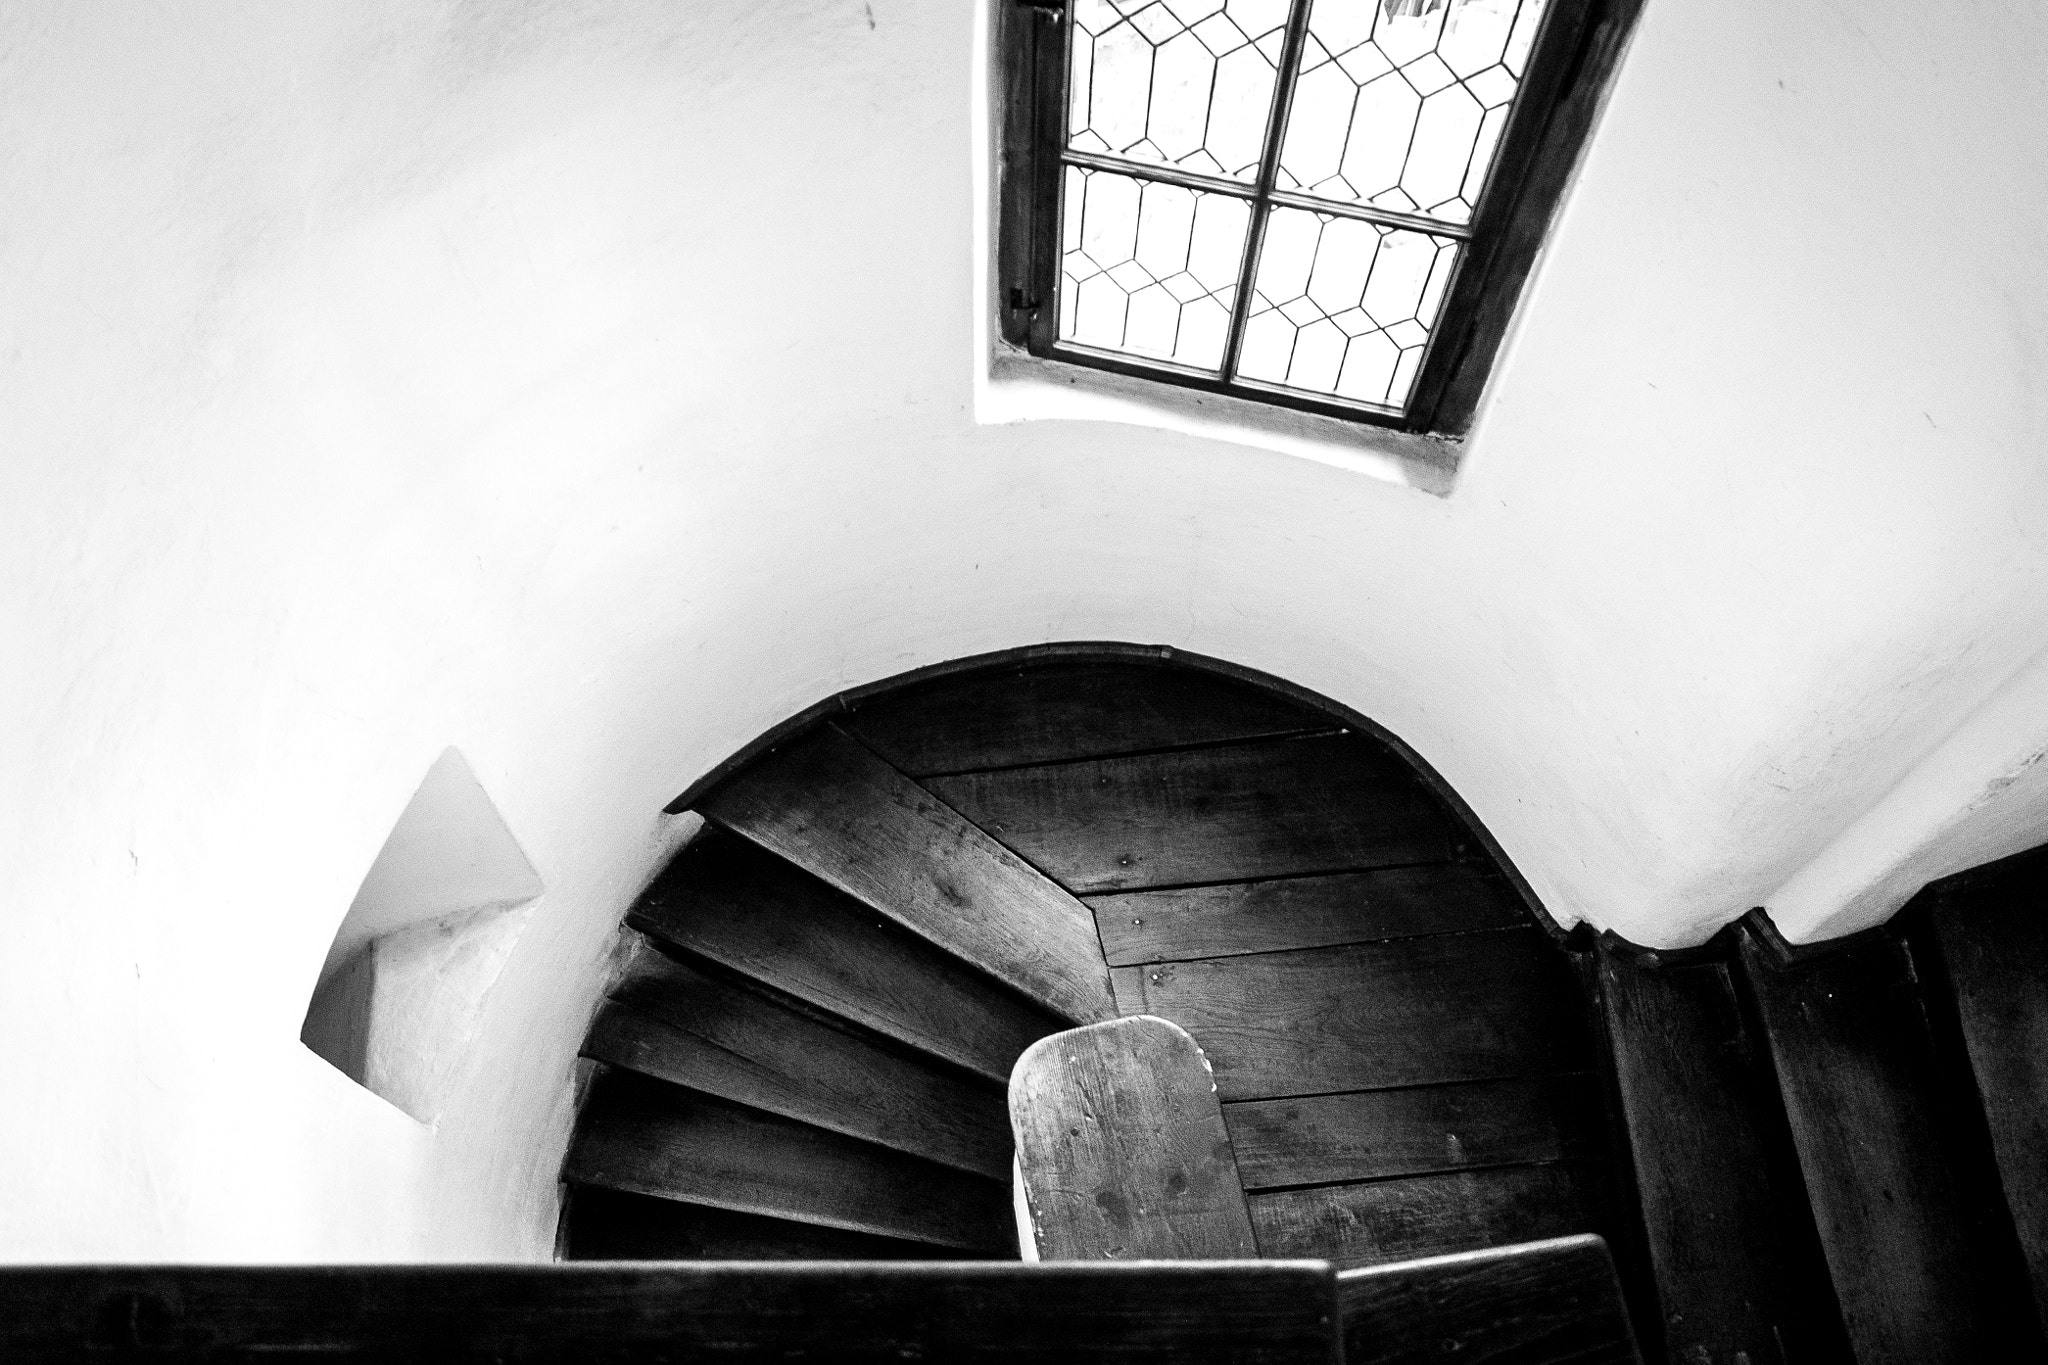 Photograph Stairs in Bran Castle by Valentin Iancu on 500px